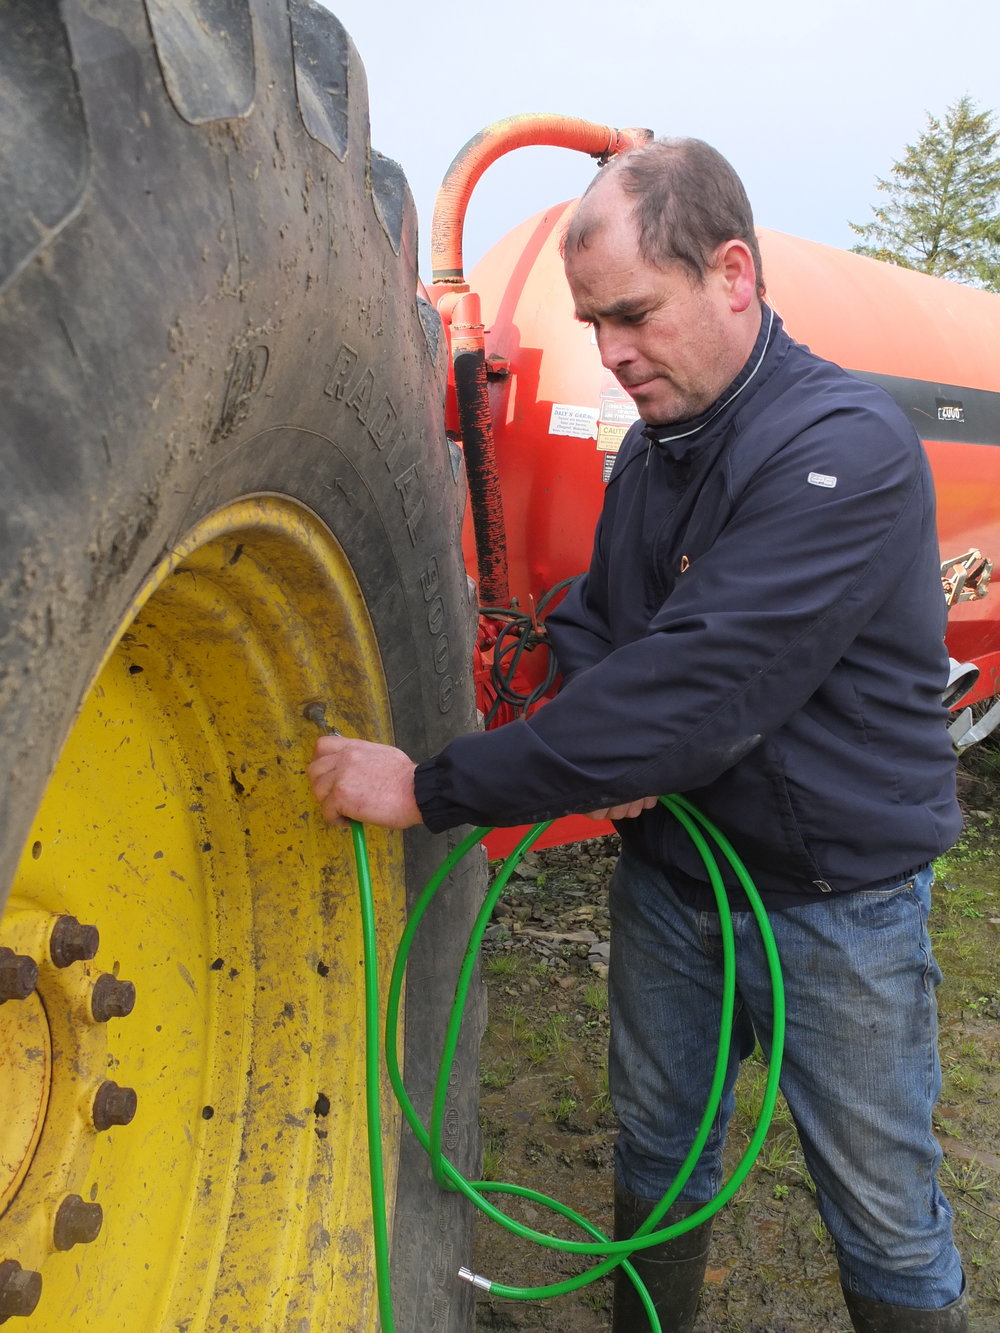 Focus on the Farming - The Tyre2Tyre Balancer gives you the freedom to manage your slow punctures on your schedule, and without undue risk to your own safety or machinery.Simply connect a strong tyre to a slow puncture tyre, come back to the puncture when you're ready to drive to your compressor.Mend the puncture (or not!), but do so when you have the right tools and help to hand!